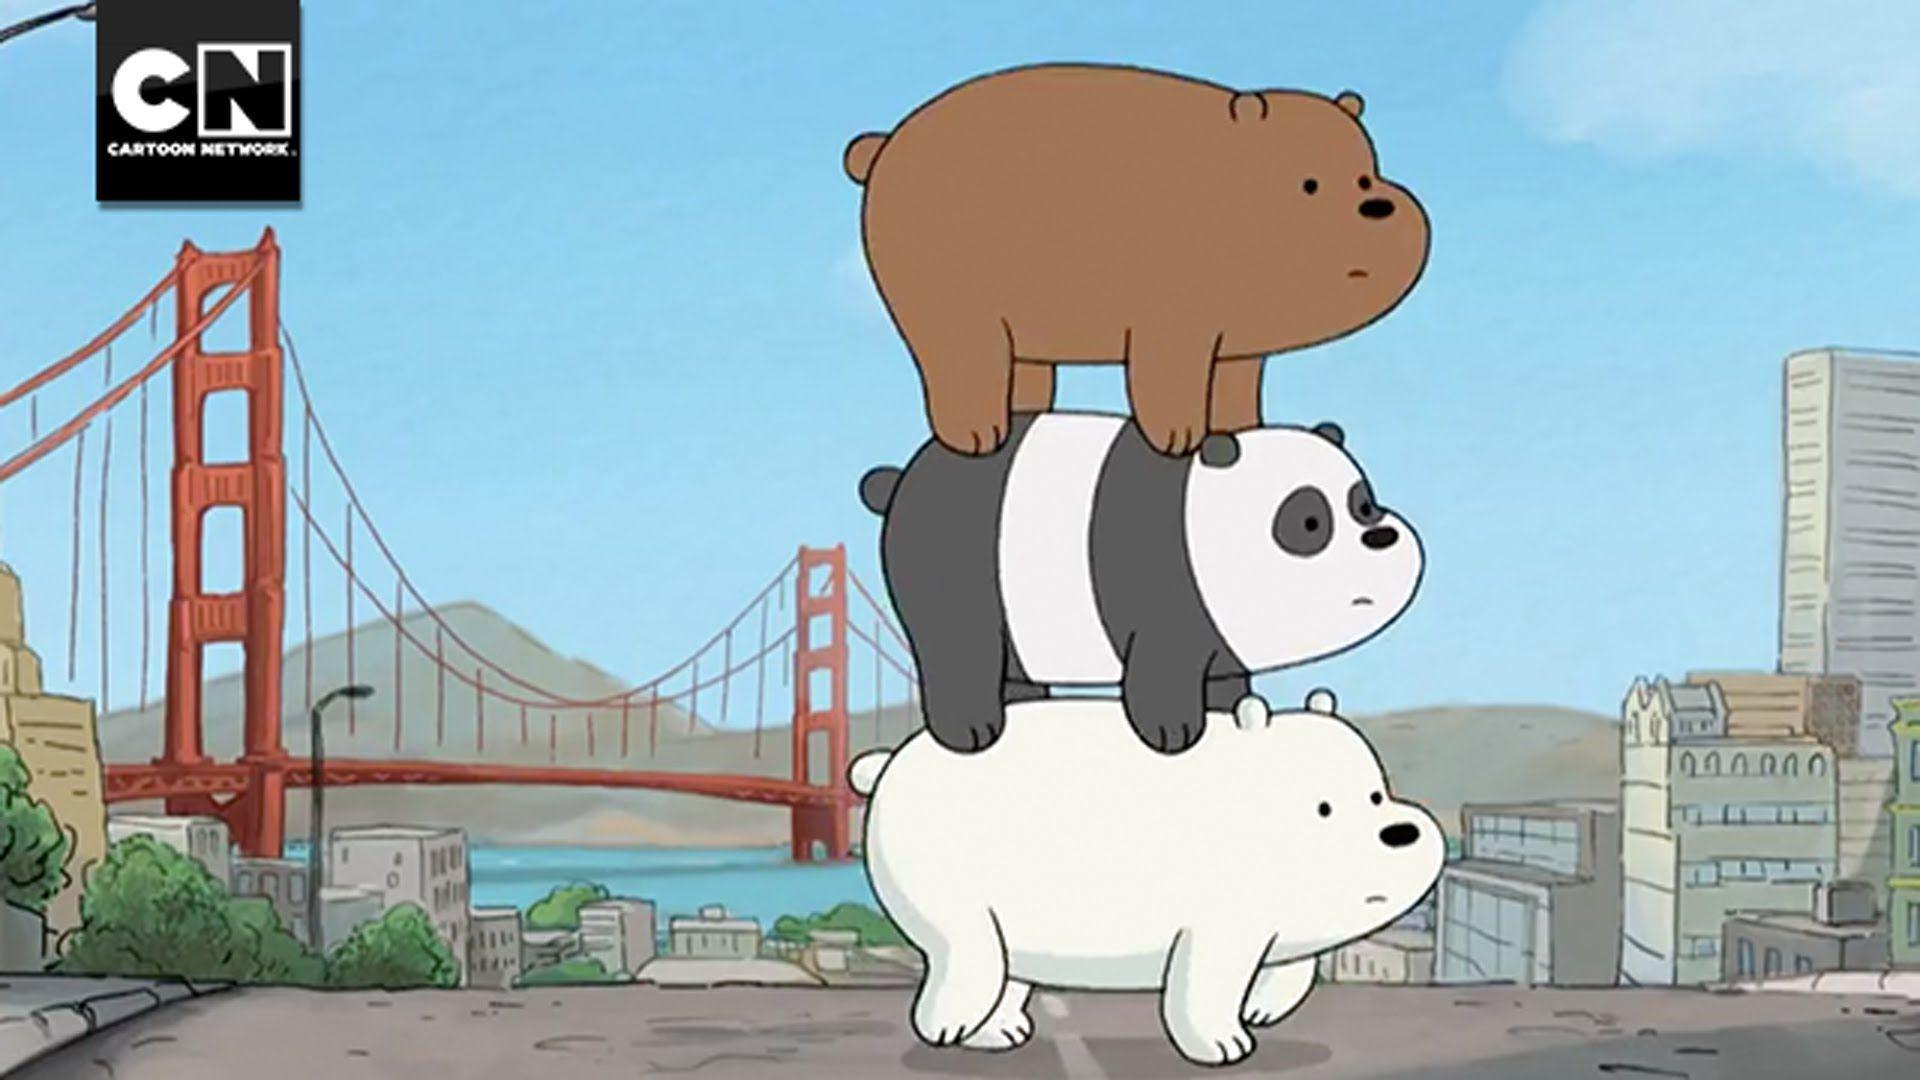 We Bare Bears Wallpapers Free Pictures On Greepx